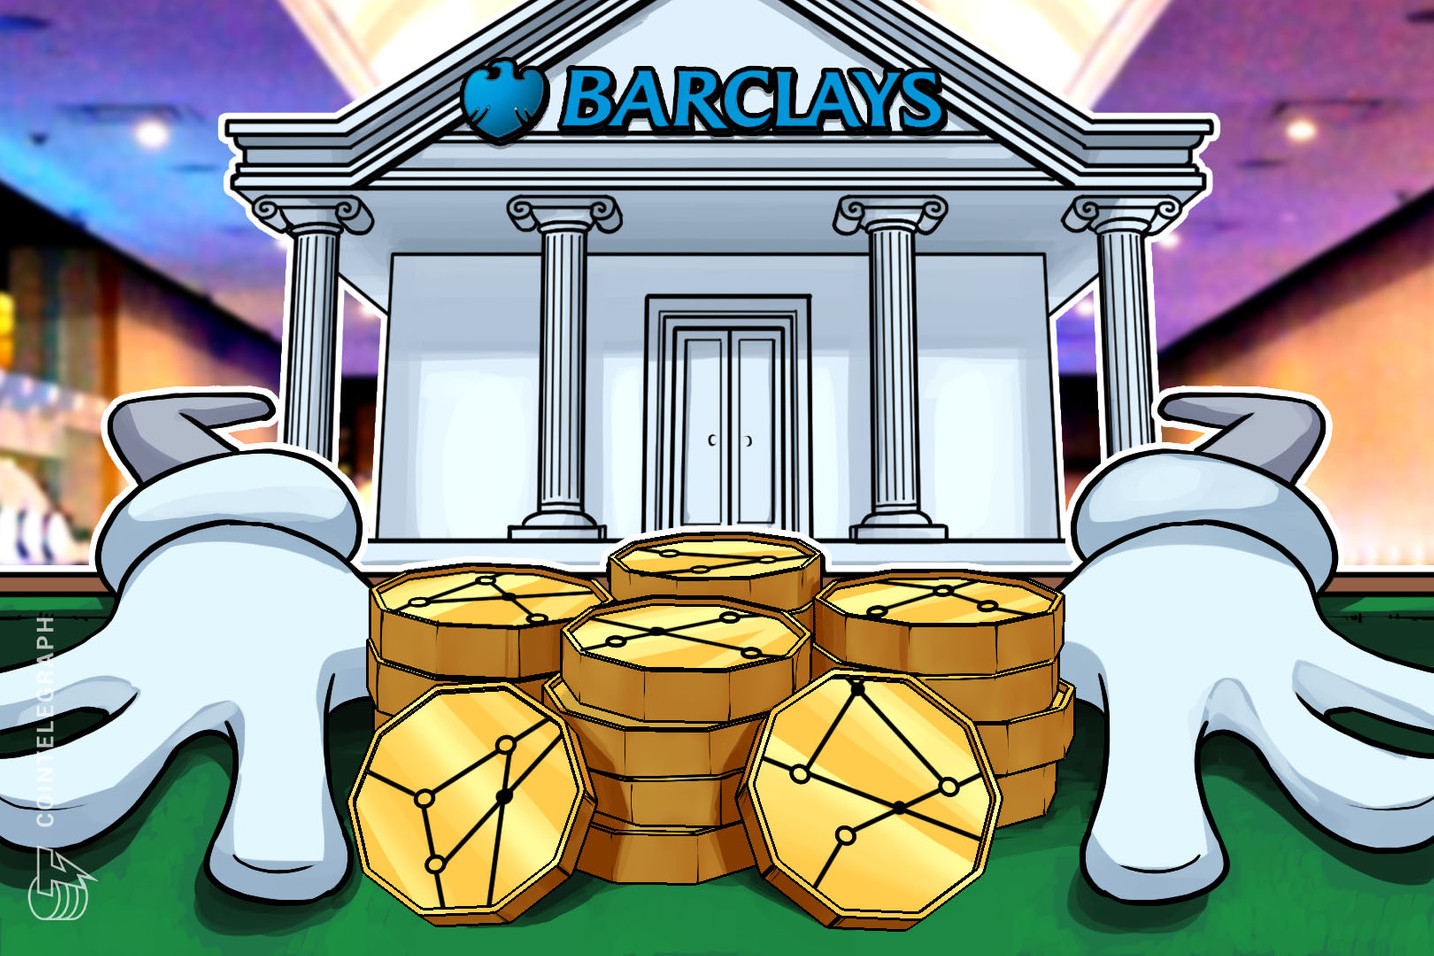 Barclays Denies Crypto Trading Desk Plans as Staff Removes 'Digital Asset Project' LinkedIn Info